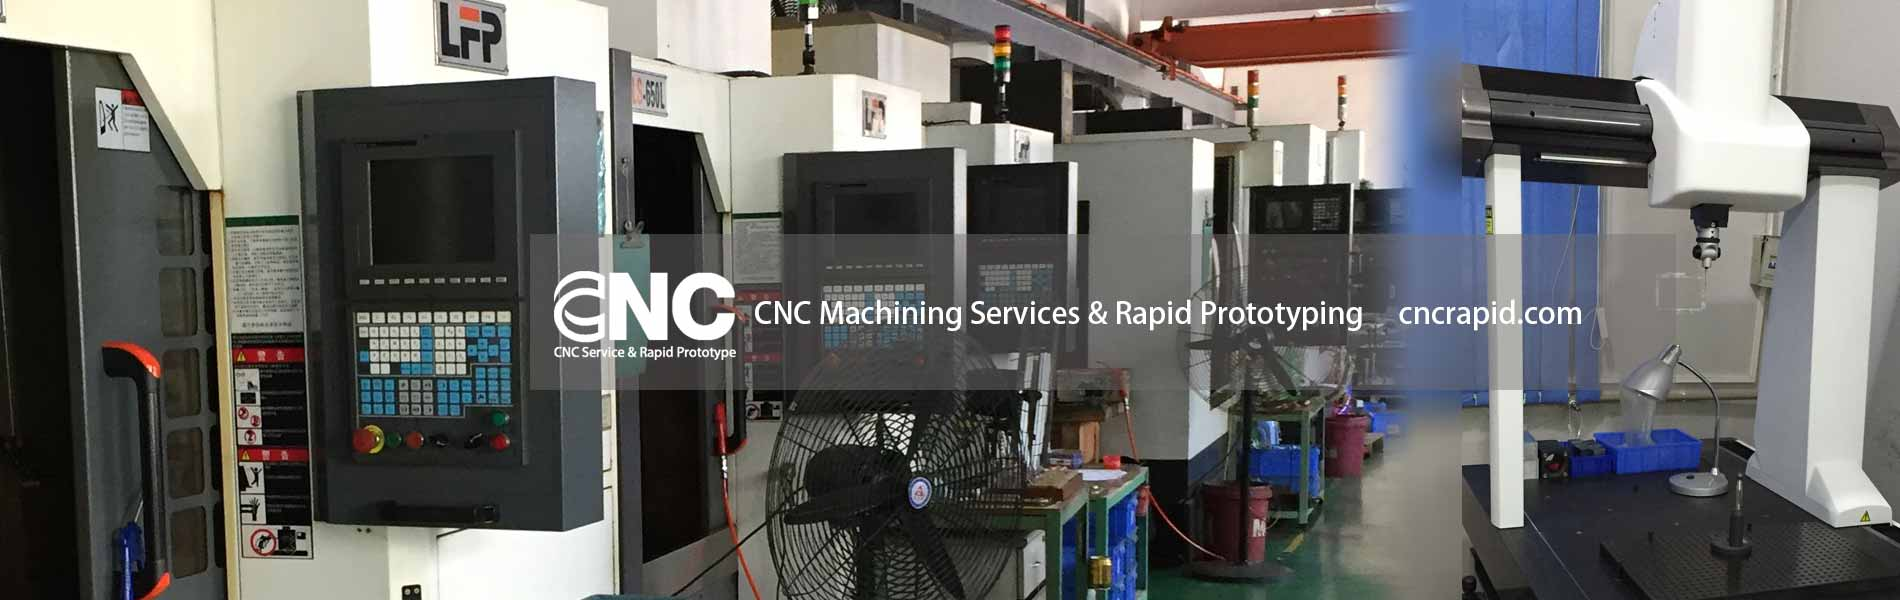 CNC Maching services and rapid prototyping, CNC machining part factory, Milling, Turning, Custom made parts supplier, Precision CNC service